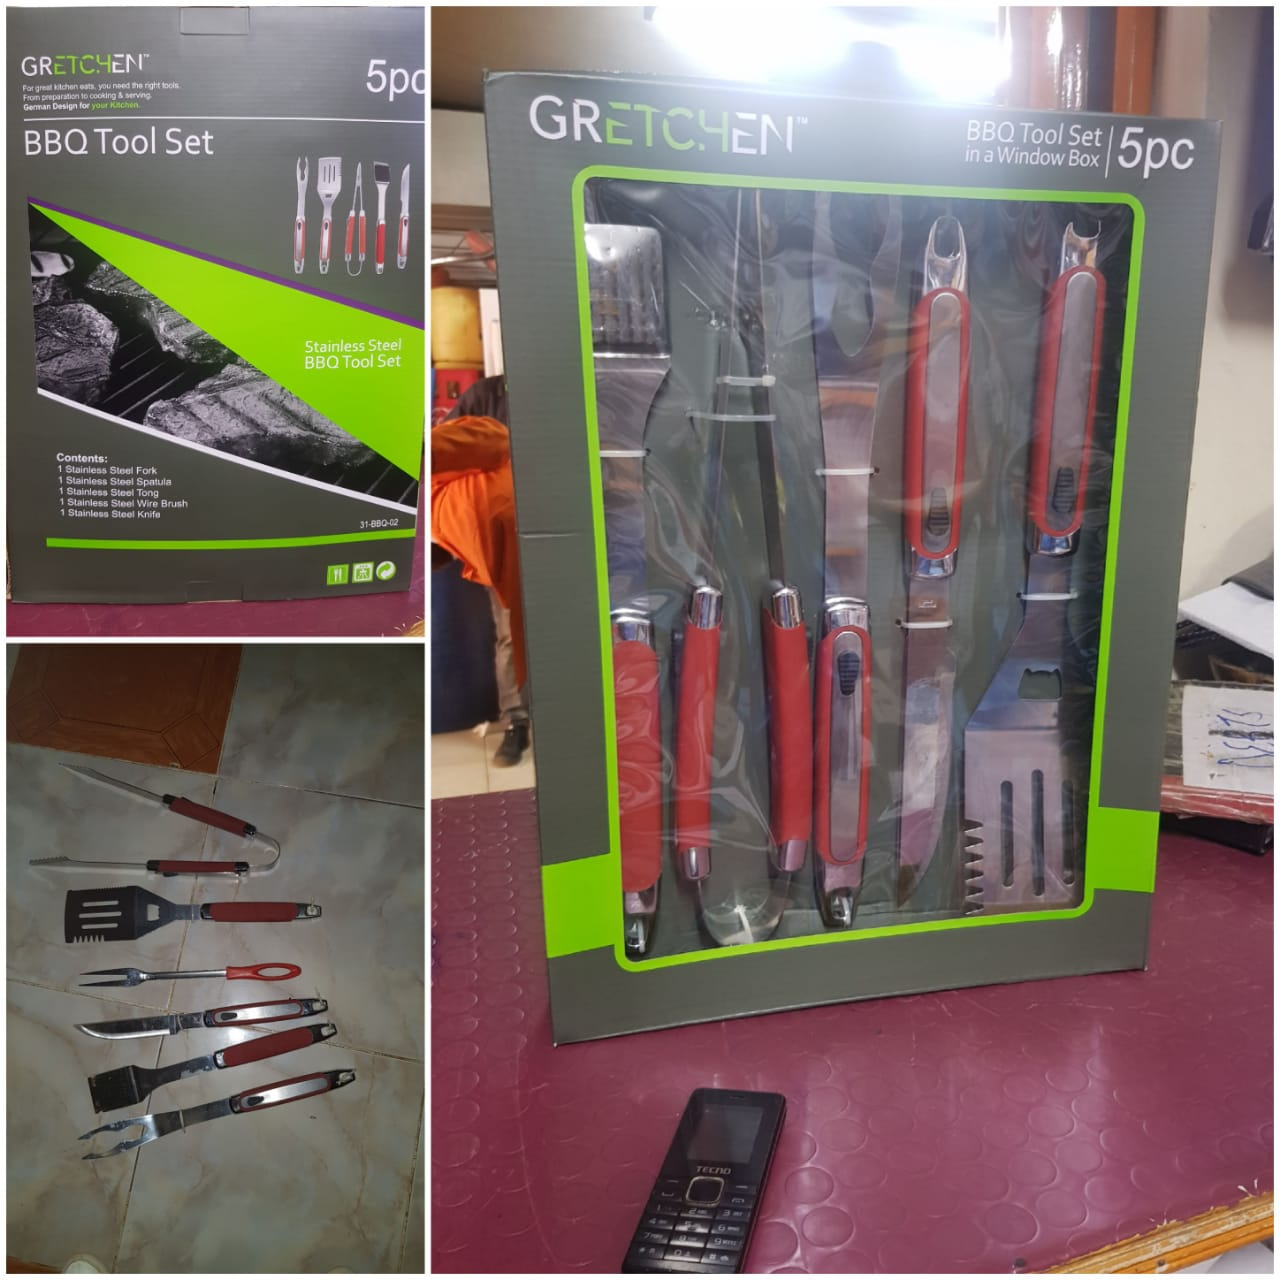 Barbecue/Barbeque BBQ kitchen tool set